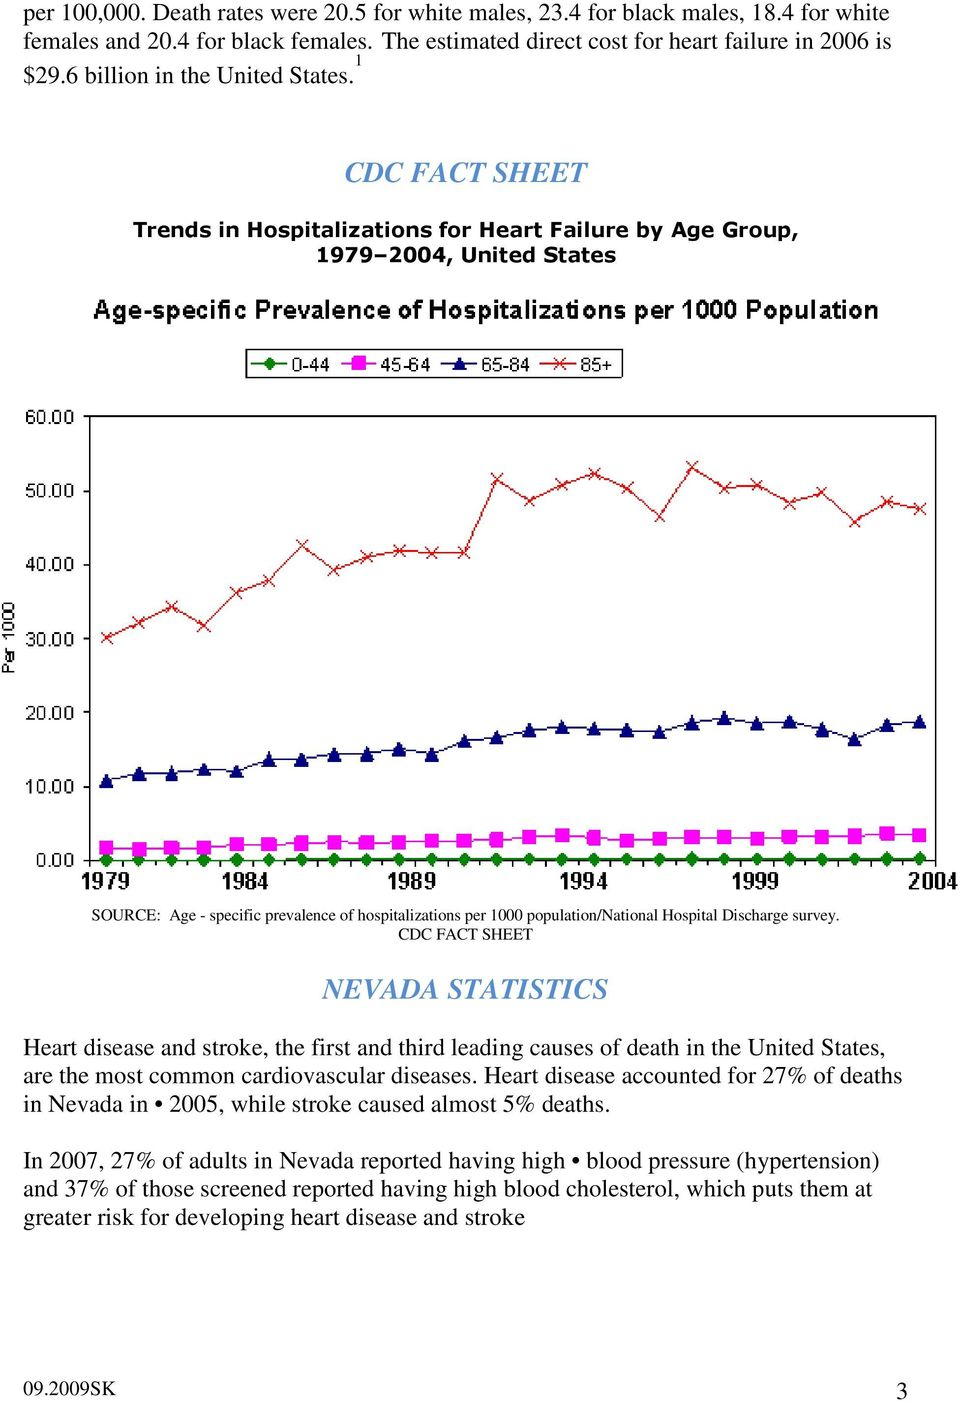 1 CDC FACT SHEET Trends in Hospitalizations for Heart Failure by Age Group, 1979 2004, United States SOURCE: Age - specific prevalence of hospitalizations per 1000 population/national Hospital